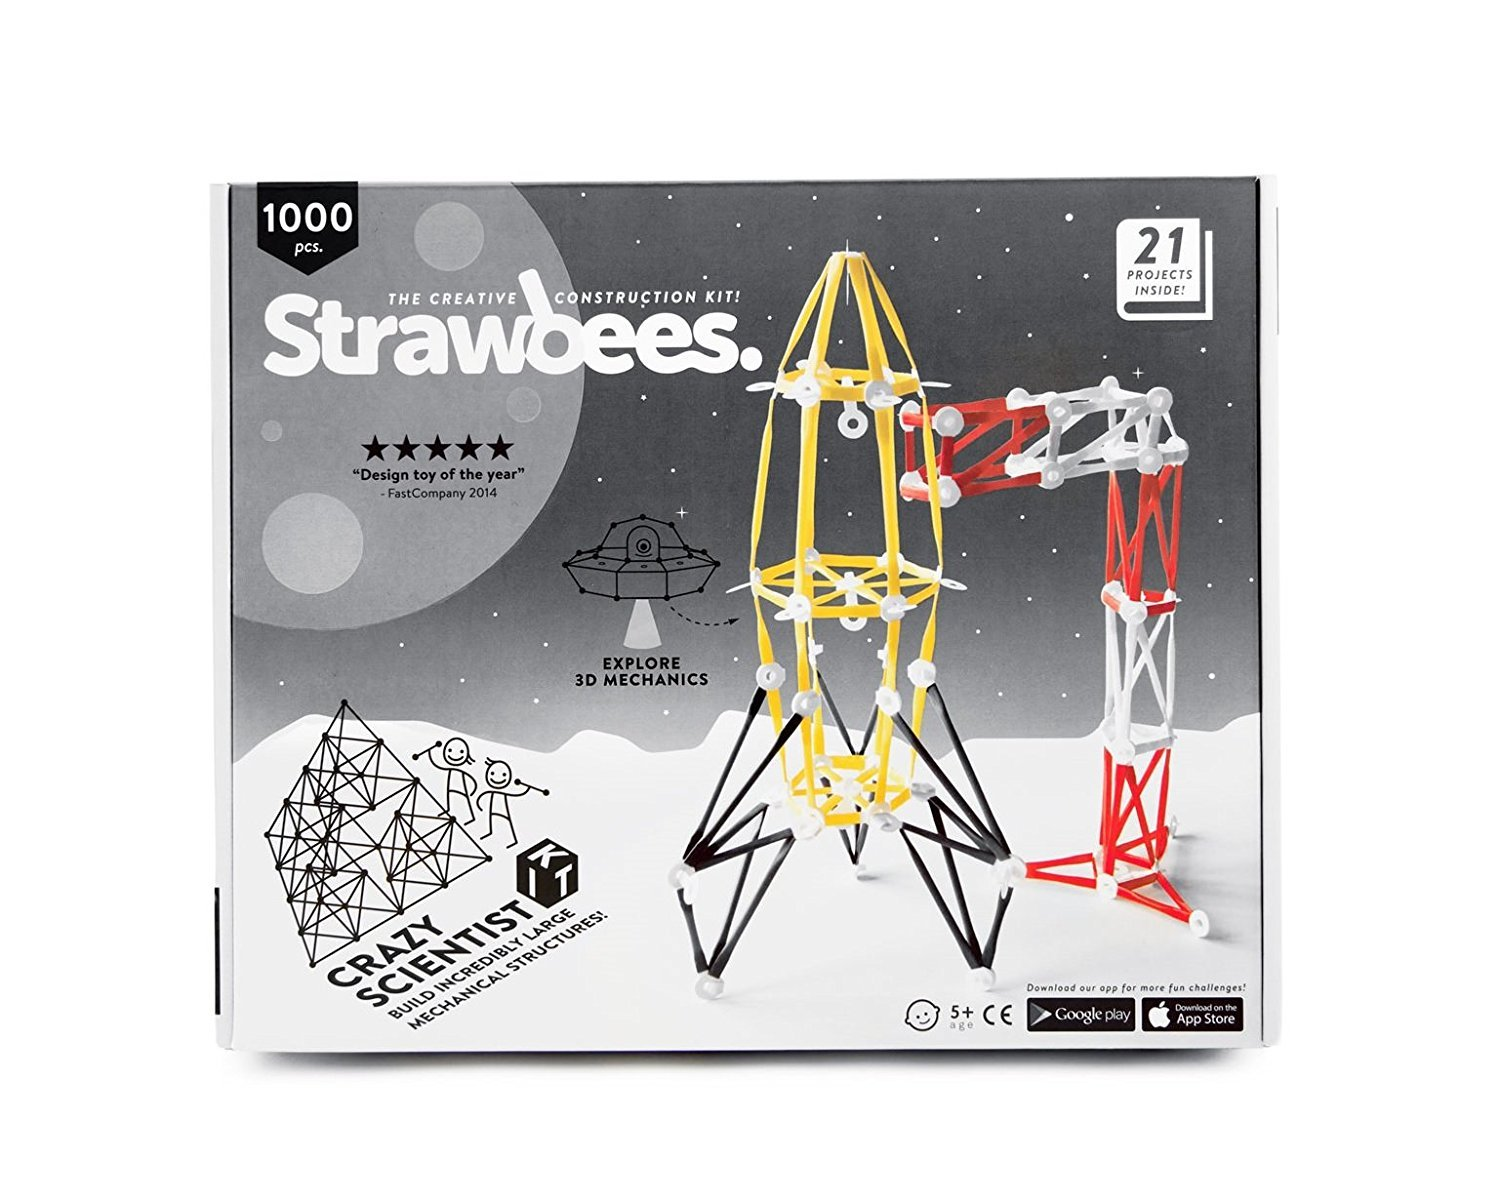 Strawbees Crazy Scientist Builder Kit - 200 Straws and 800 Connectors Set, Educational & Creative Building Toy, Tinkering & STEM Learning, Suitable for Children 5 Years & Up Review